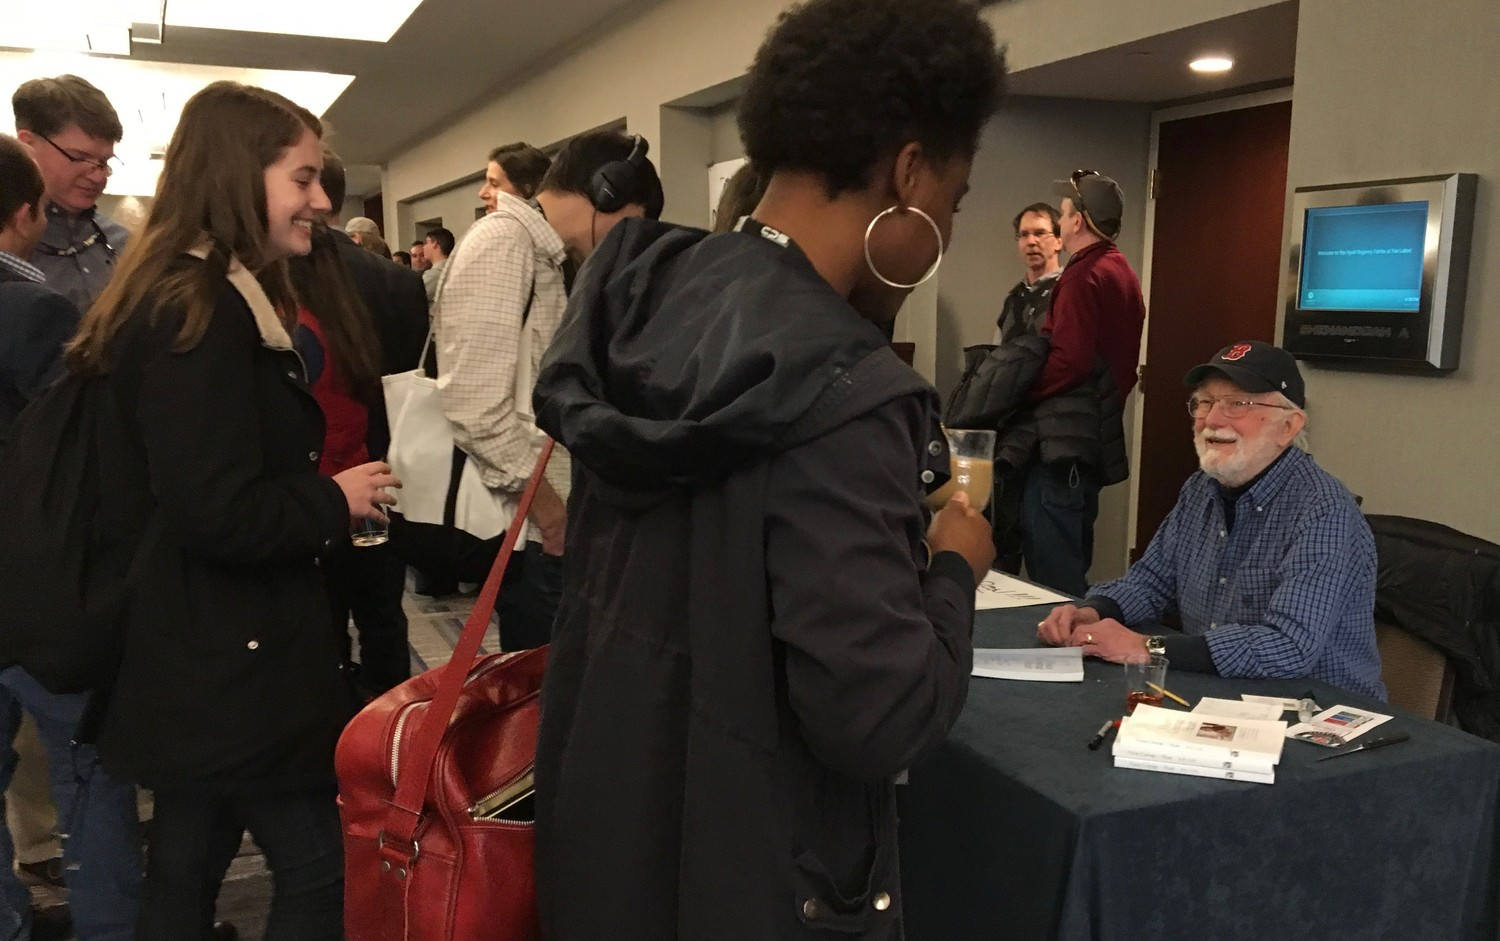 Bob Lynn, author of Vision, Courage & Heart (at the recent Northern Short Course in Fairfax, VA,) signs his book for participants. He signed 75 books during the conference.